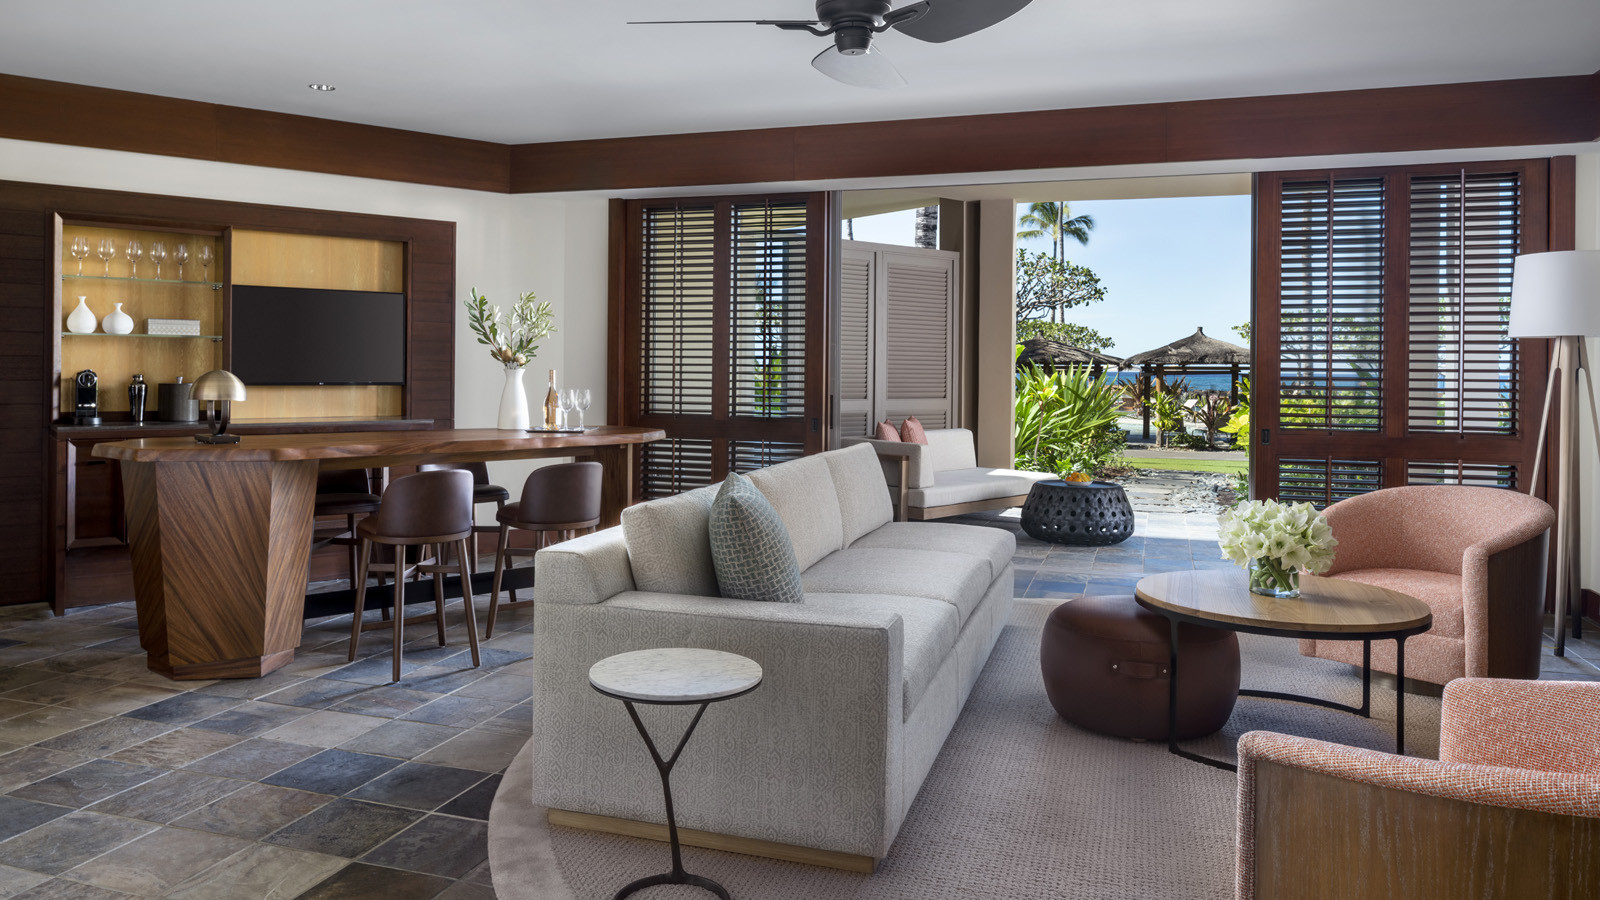 news-main-departures-magazine-recognises-property-wide-renovation-at-four-seasons-resort-hualalai-in-2021-legend-awards.1620249232.jpg